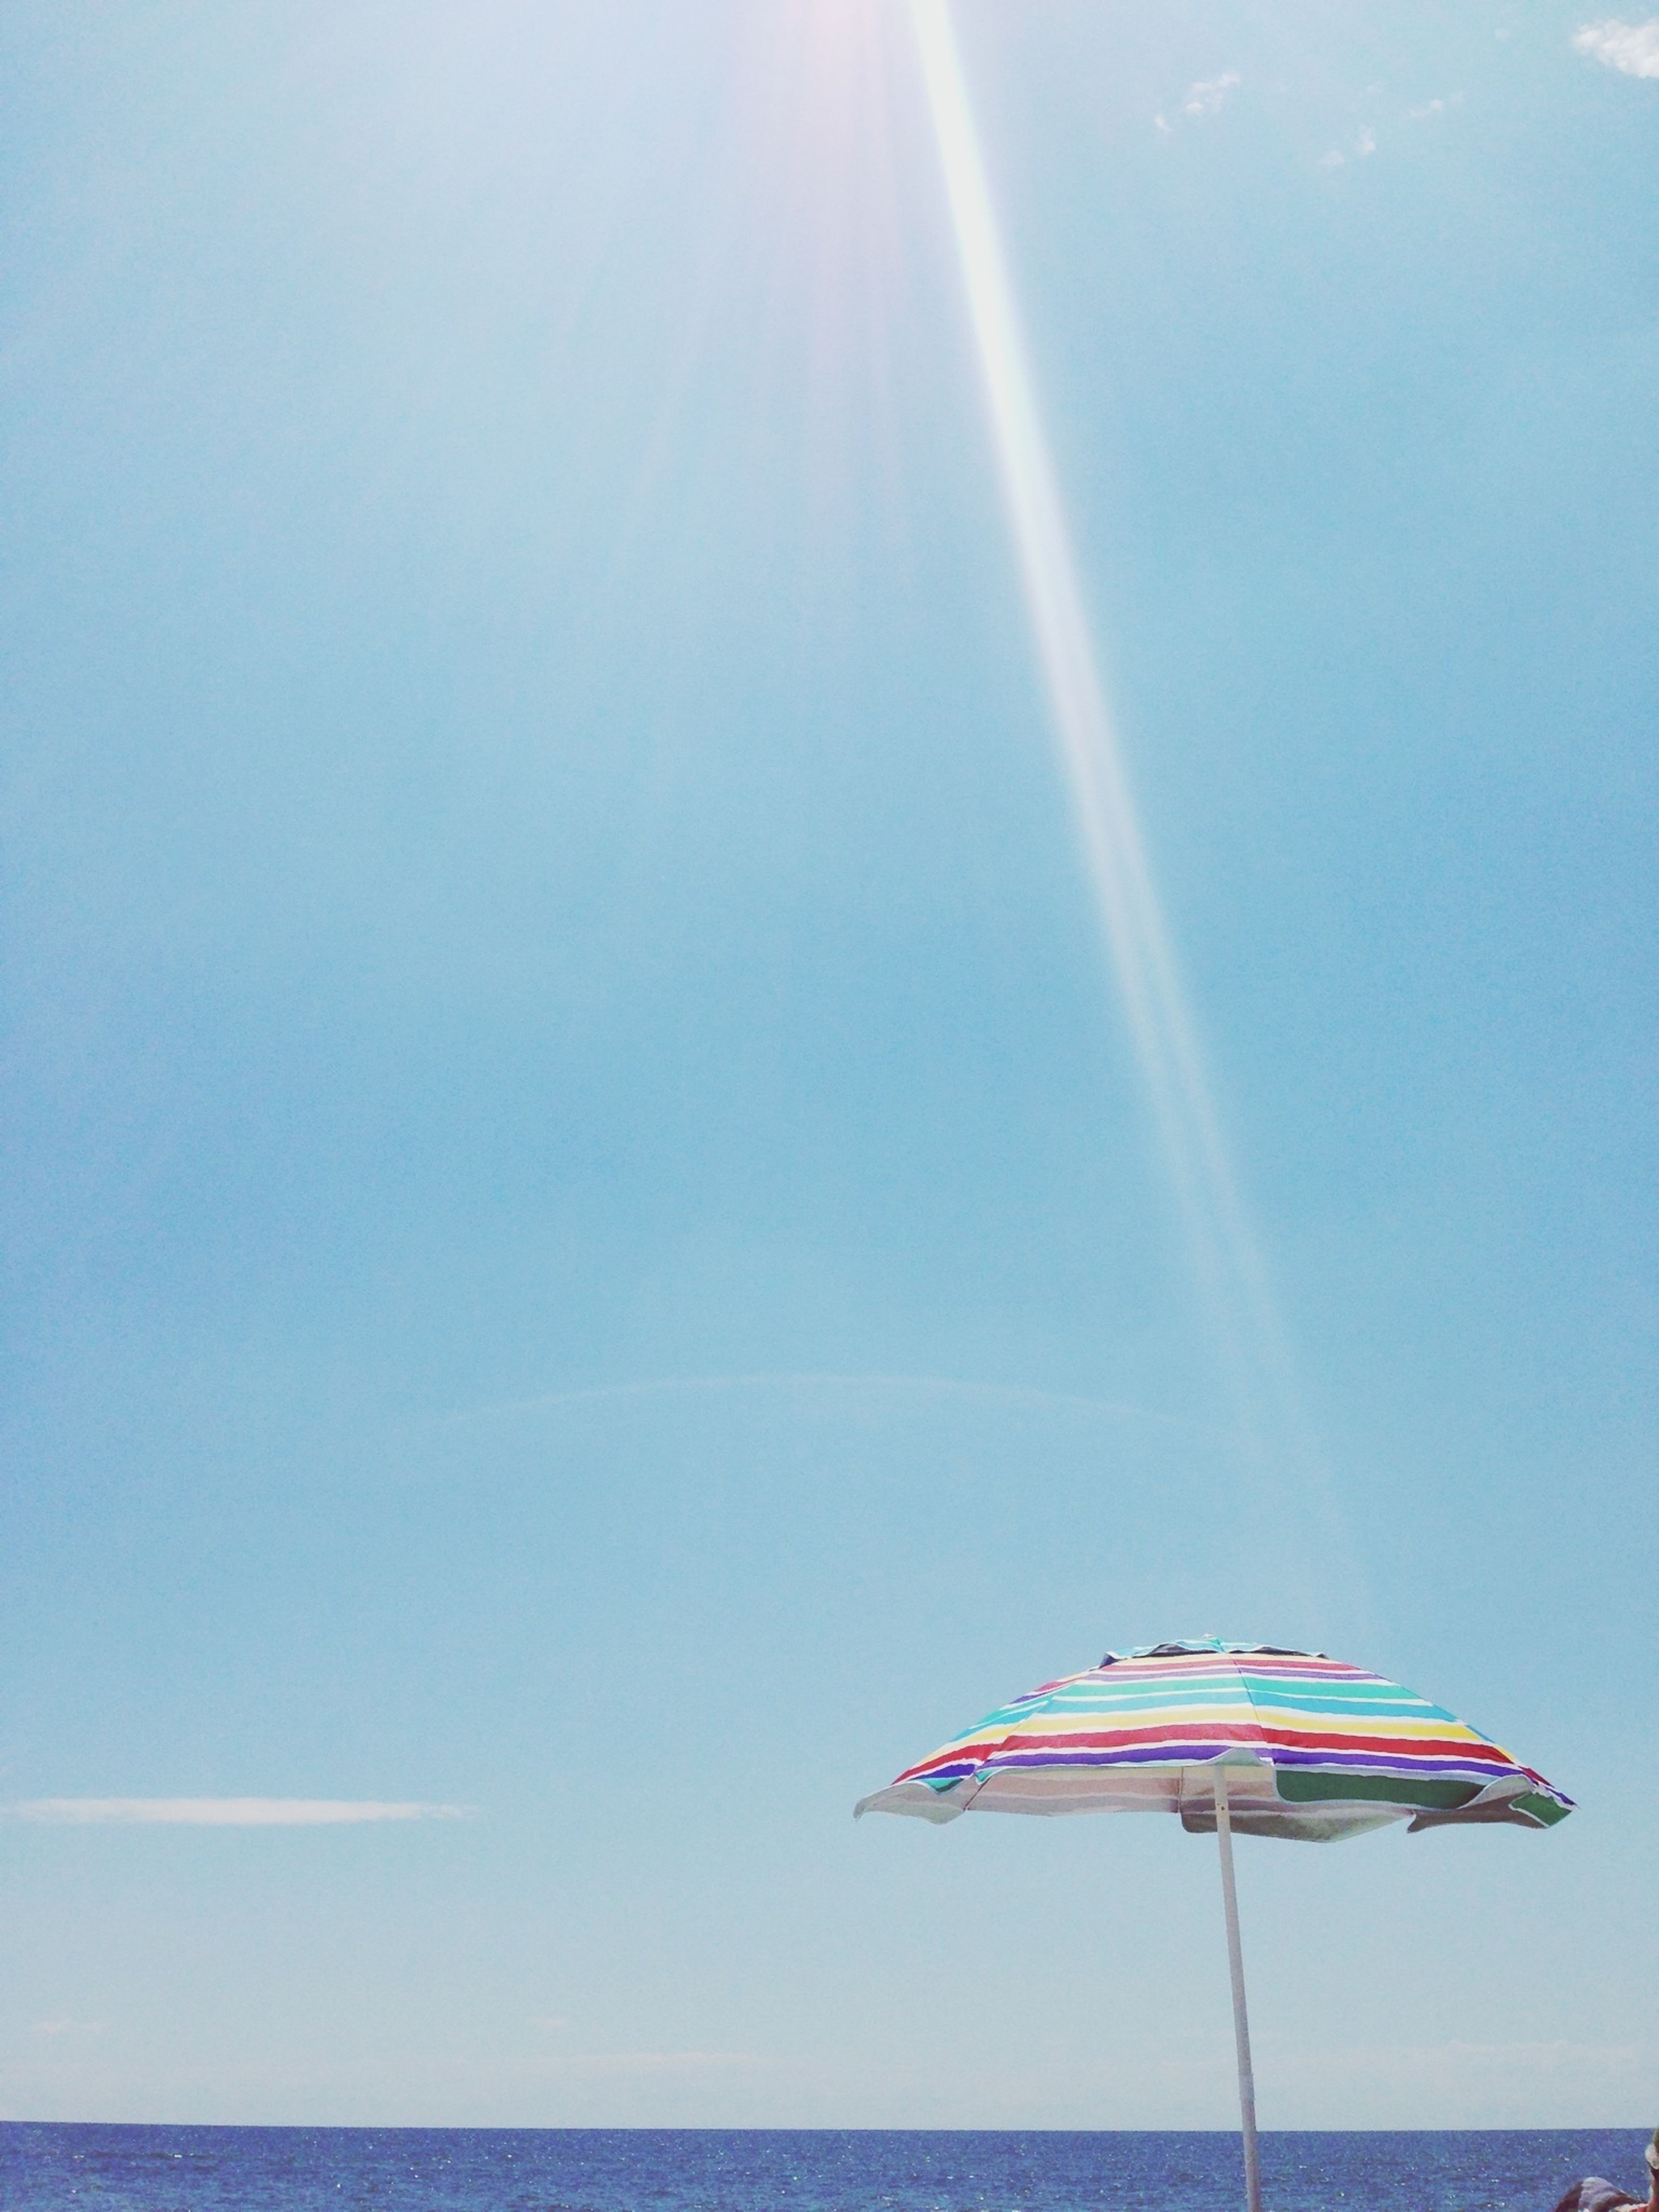 sky, blue, water, transportation, sea, clear sky, mid-air, sun, sunlight, flying, low angle view, horizon over water, nature, scenics, beauty in nature, copy space, mode of transport, day, sunbeam, nautical vessel